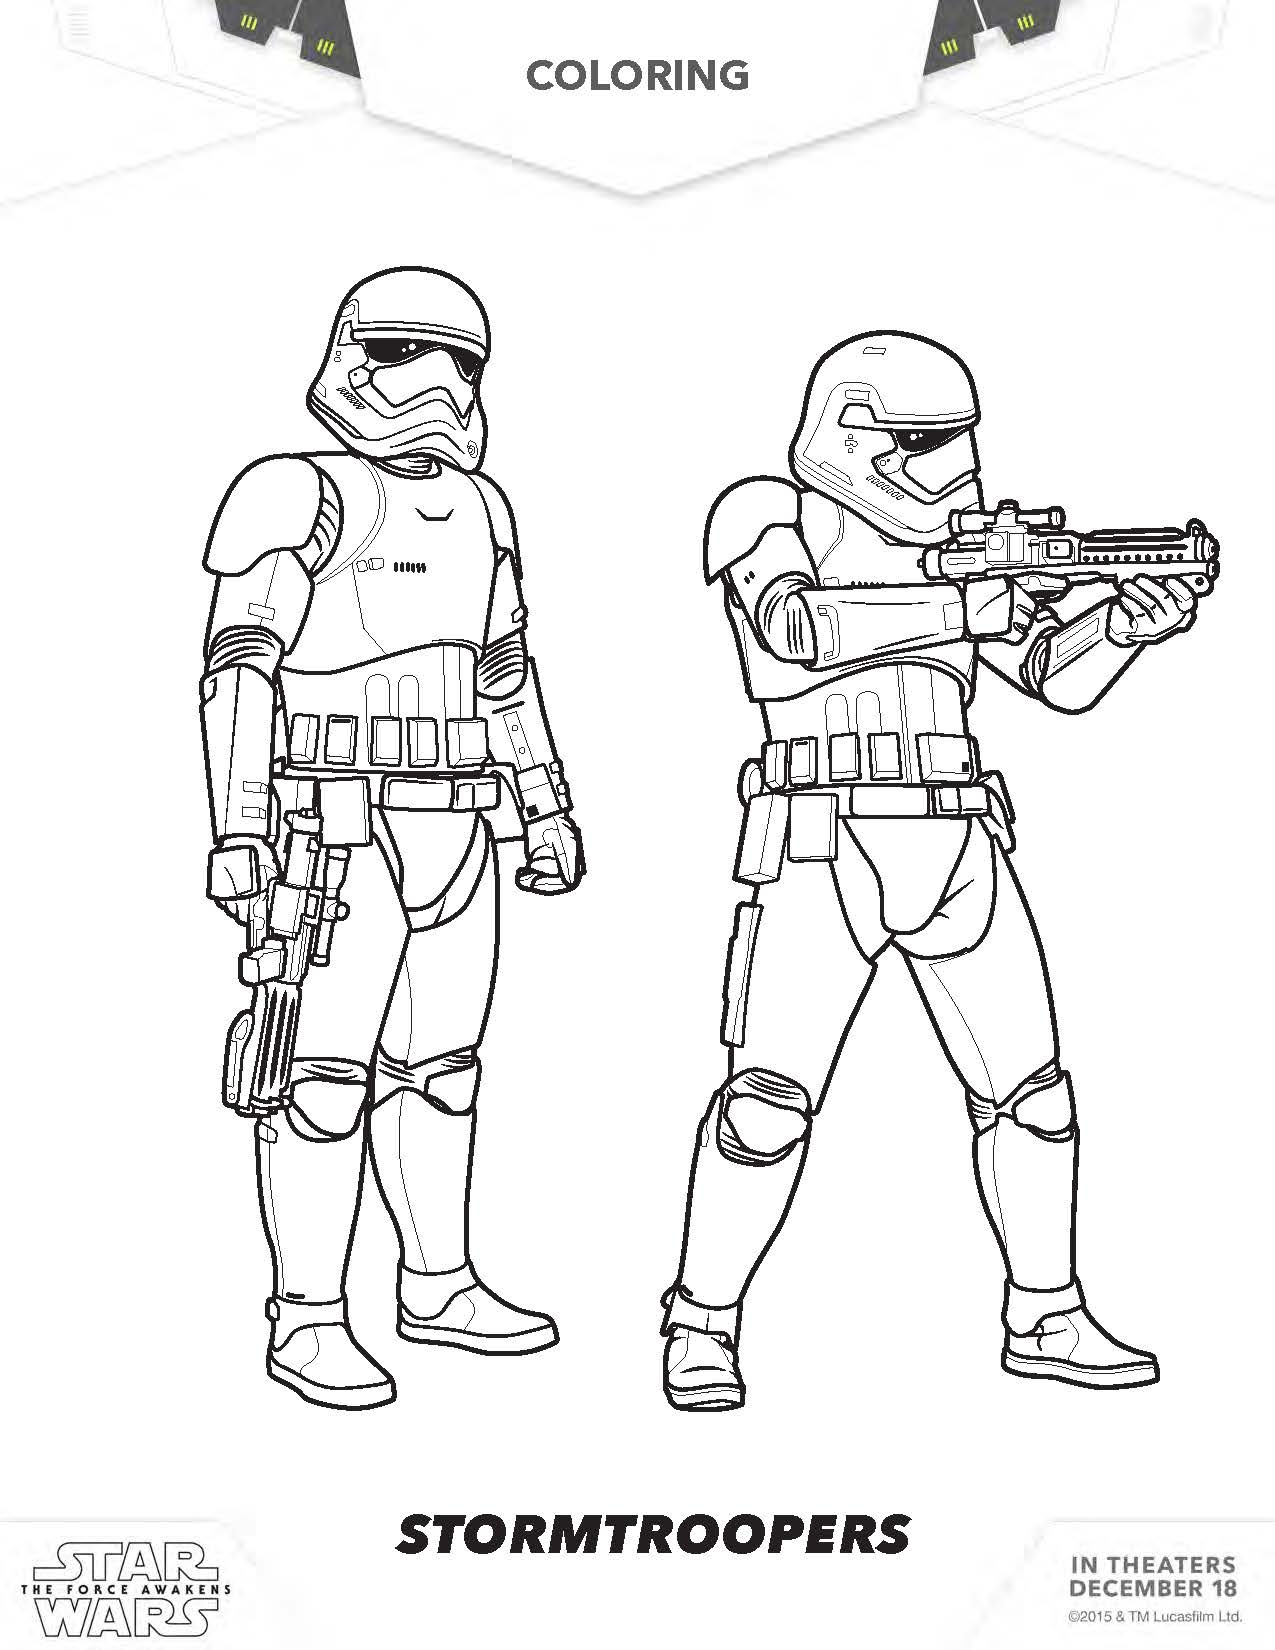 Star Wars the force Awakens Coloring Pages  Printable 14s - Free Download